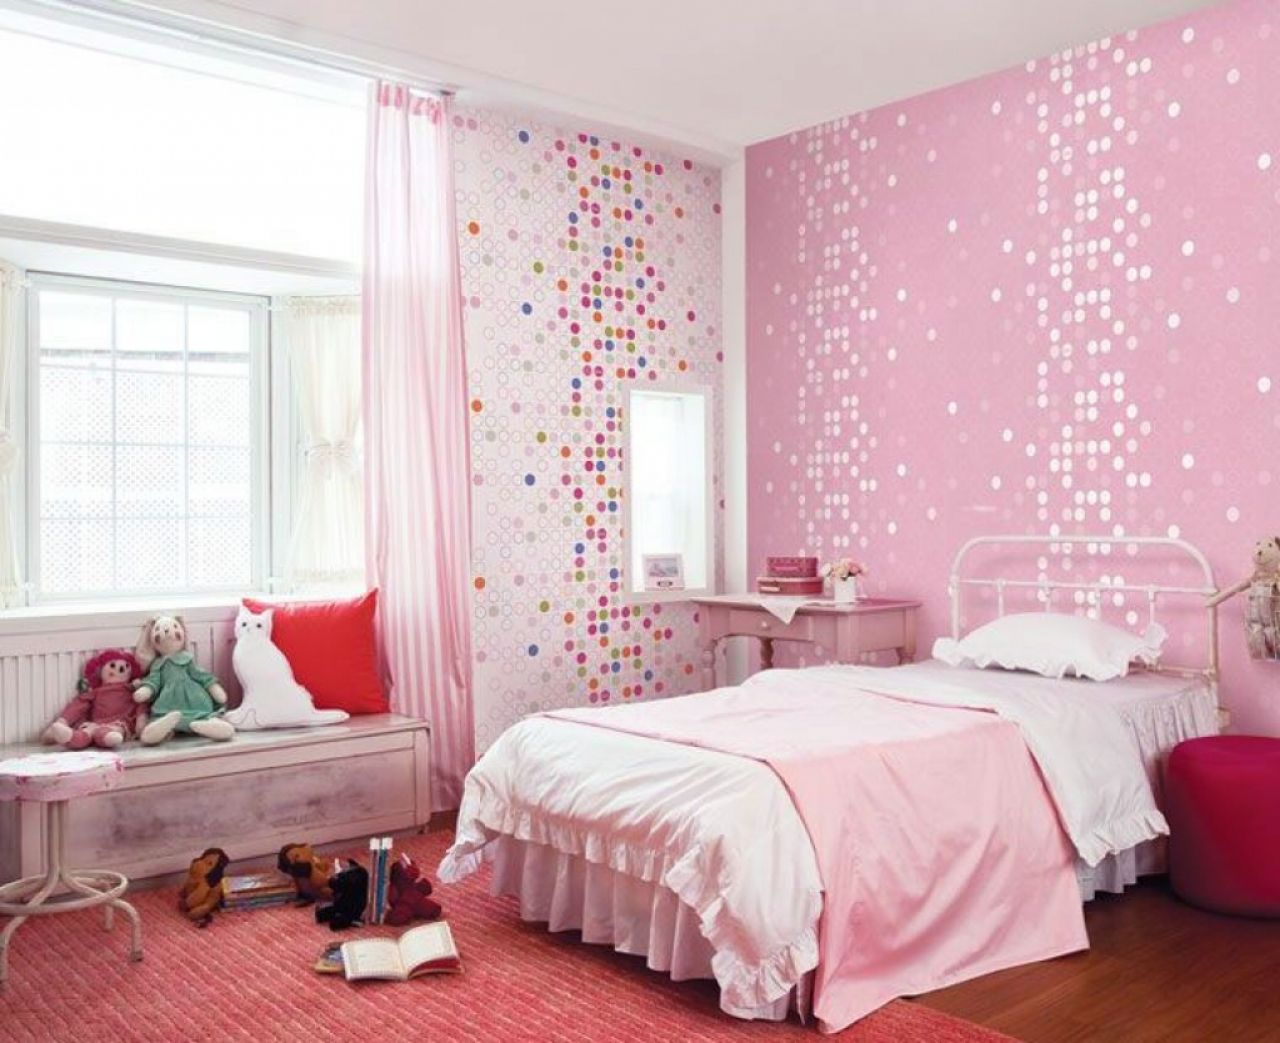 Room Funny Pink Dotty Wallpaper Girls Bedroom Home Idea | voolis ...